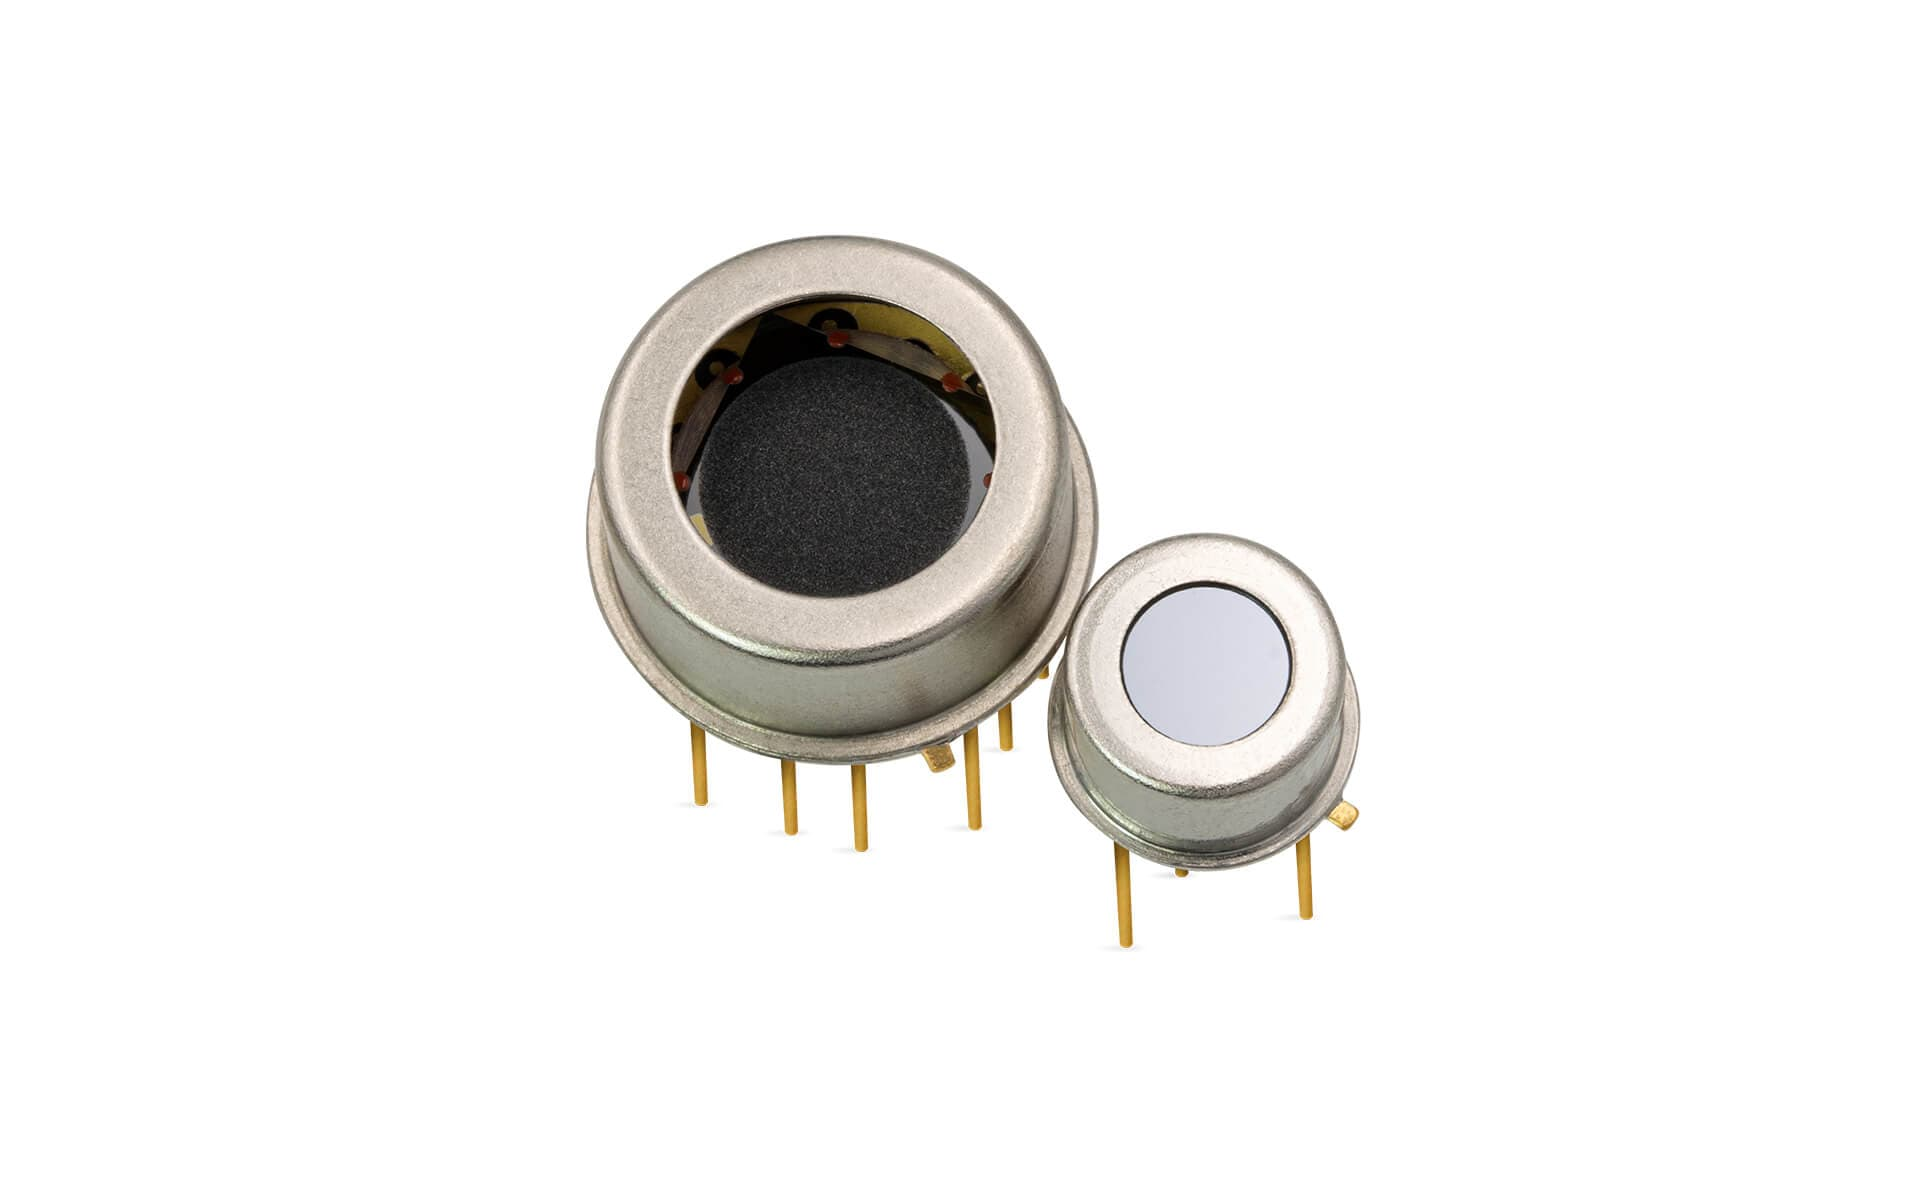 Special single channel detectors from InfraTec